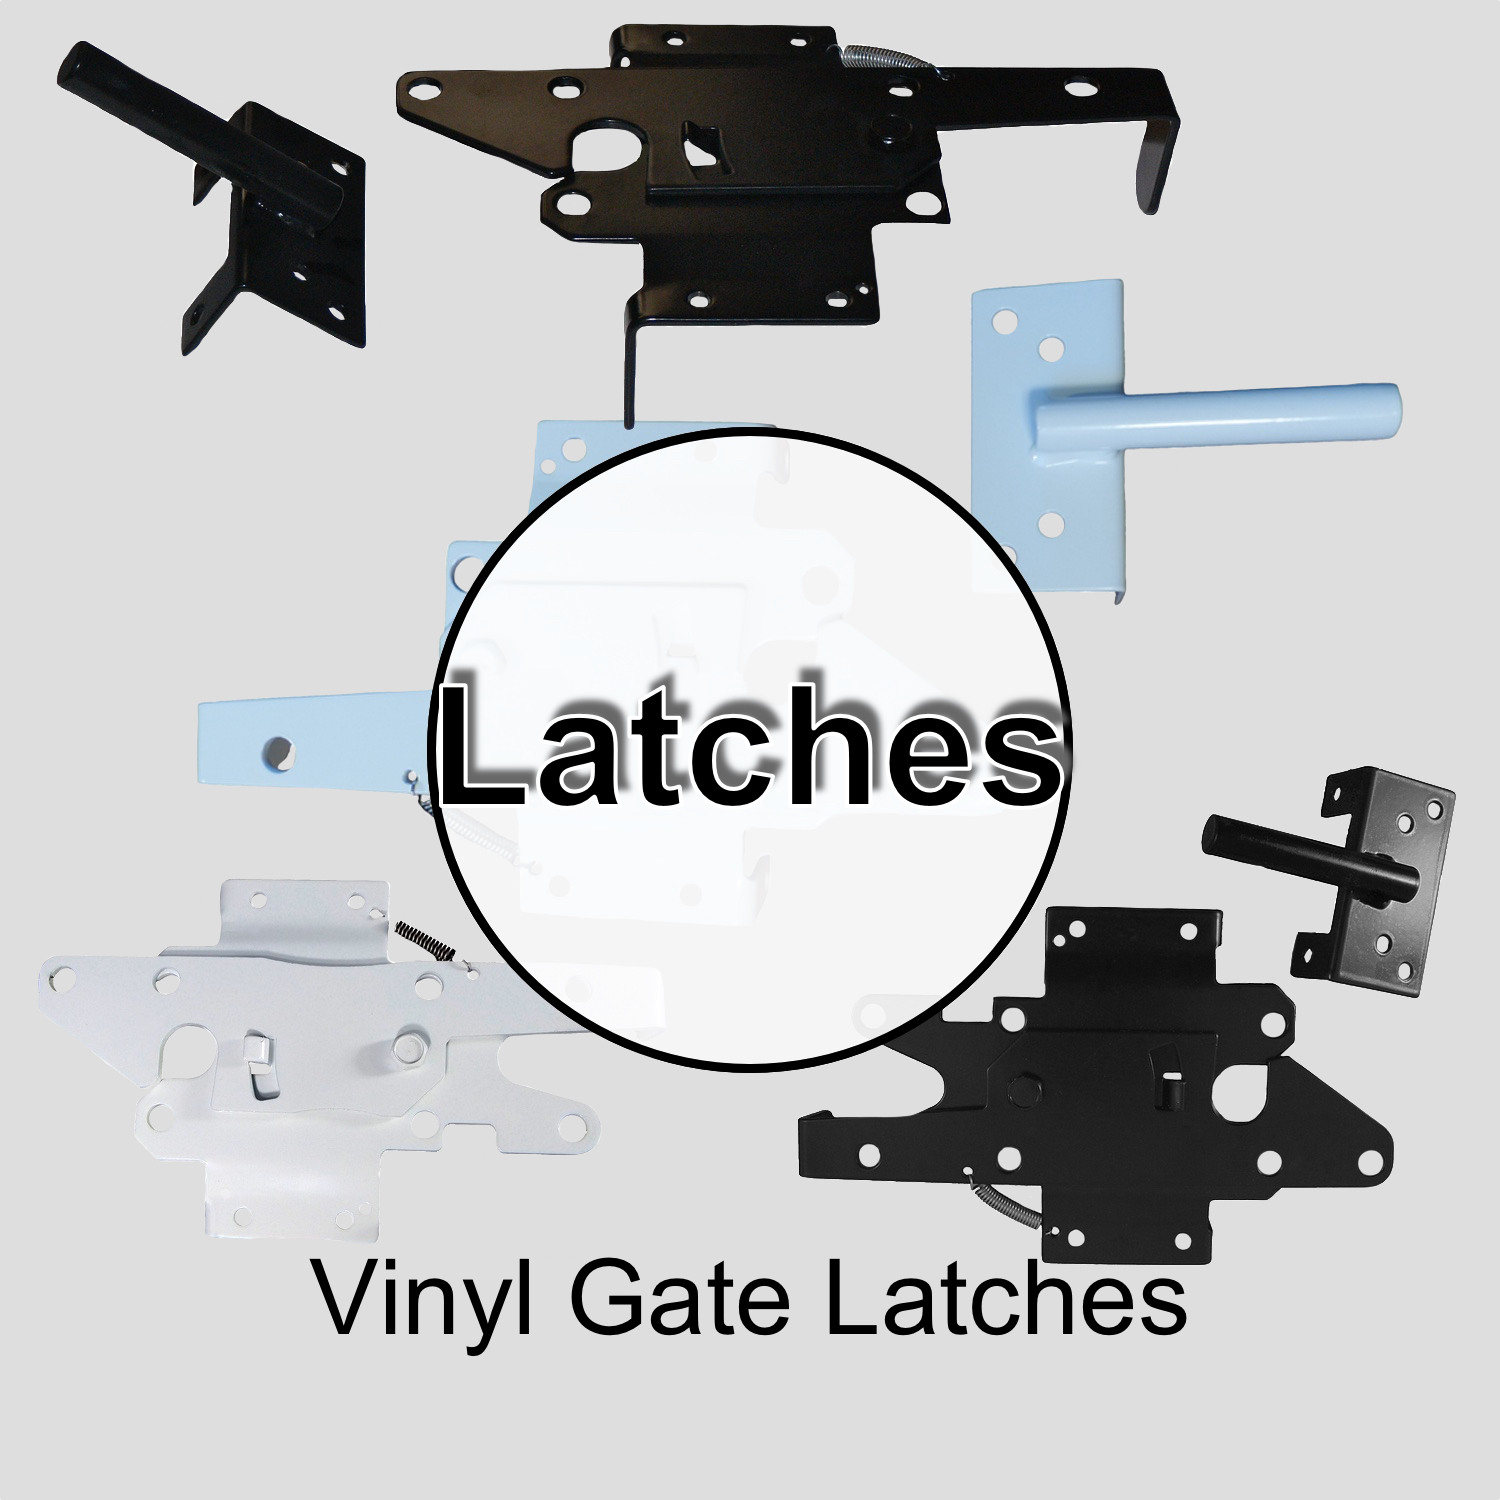 Vinyl Gate Latches